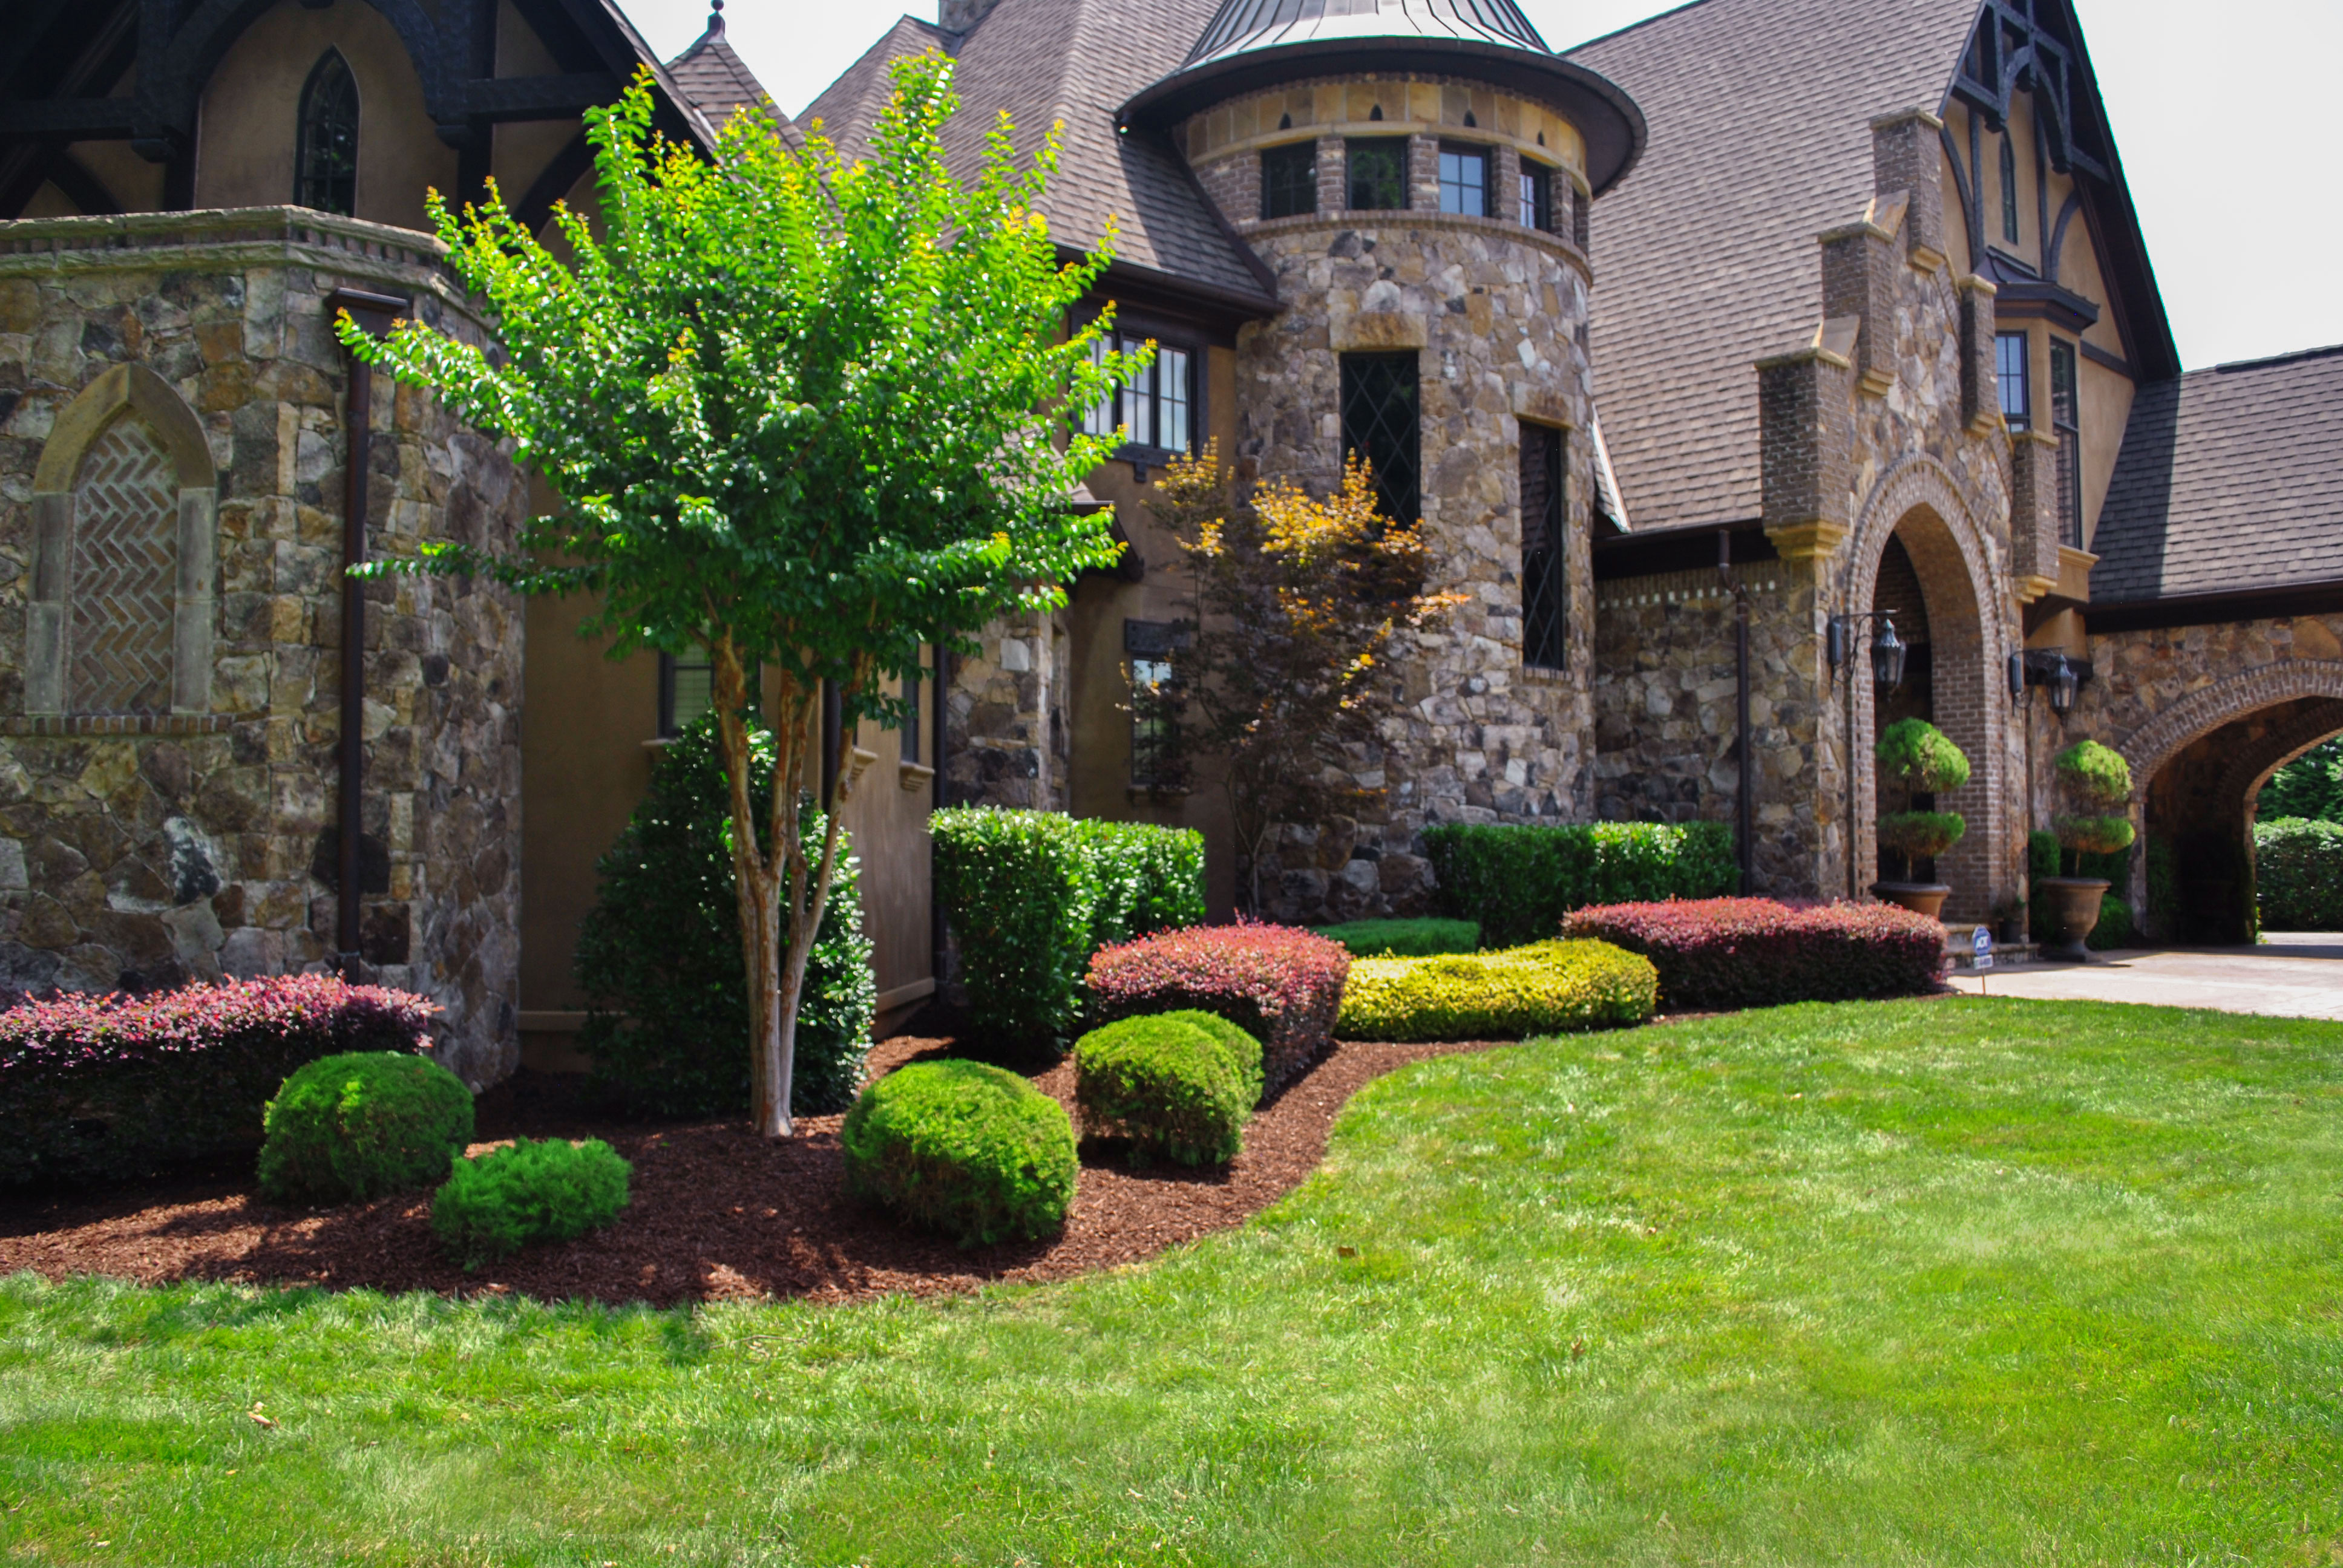 DalaCasa Landscaping Serves Clients In The Mooresville Area. Our Team Is  Proud To Continue To Earn Our Reputation For Reliable And Consistent Work,  ...